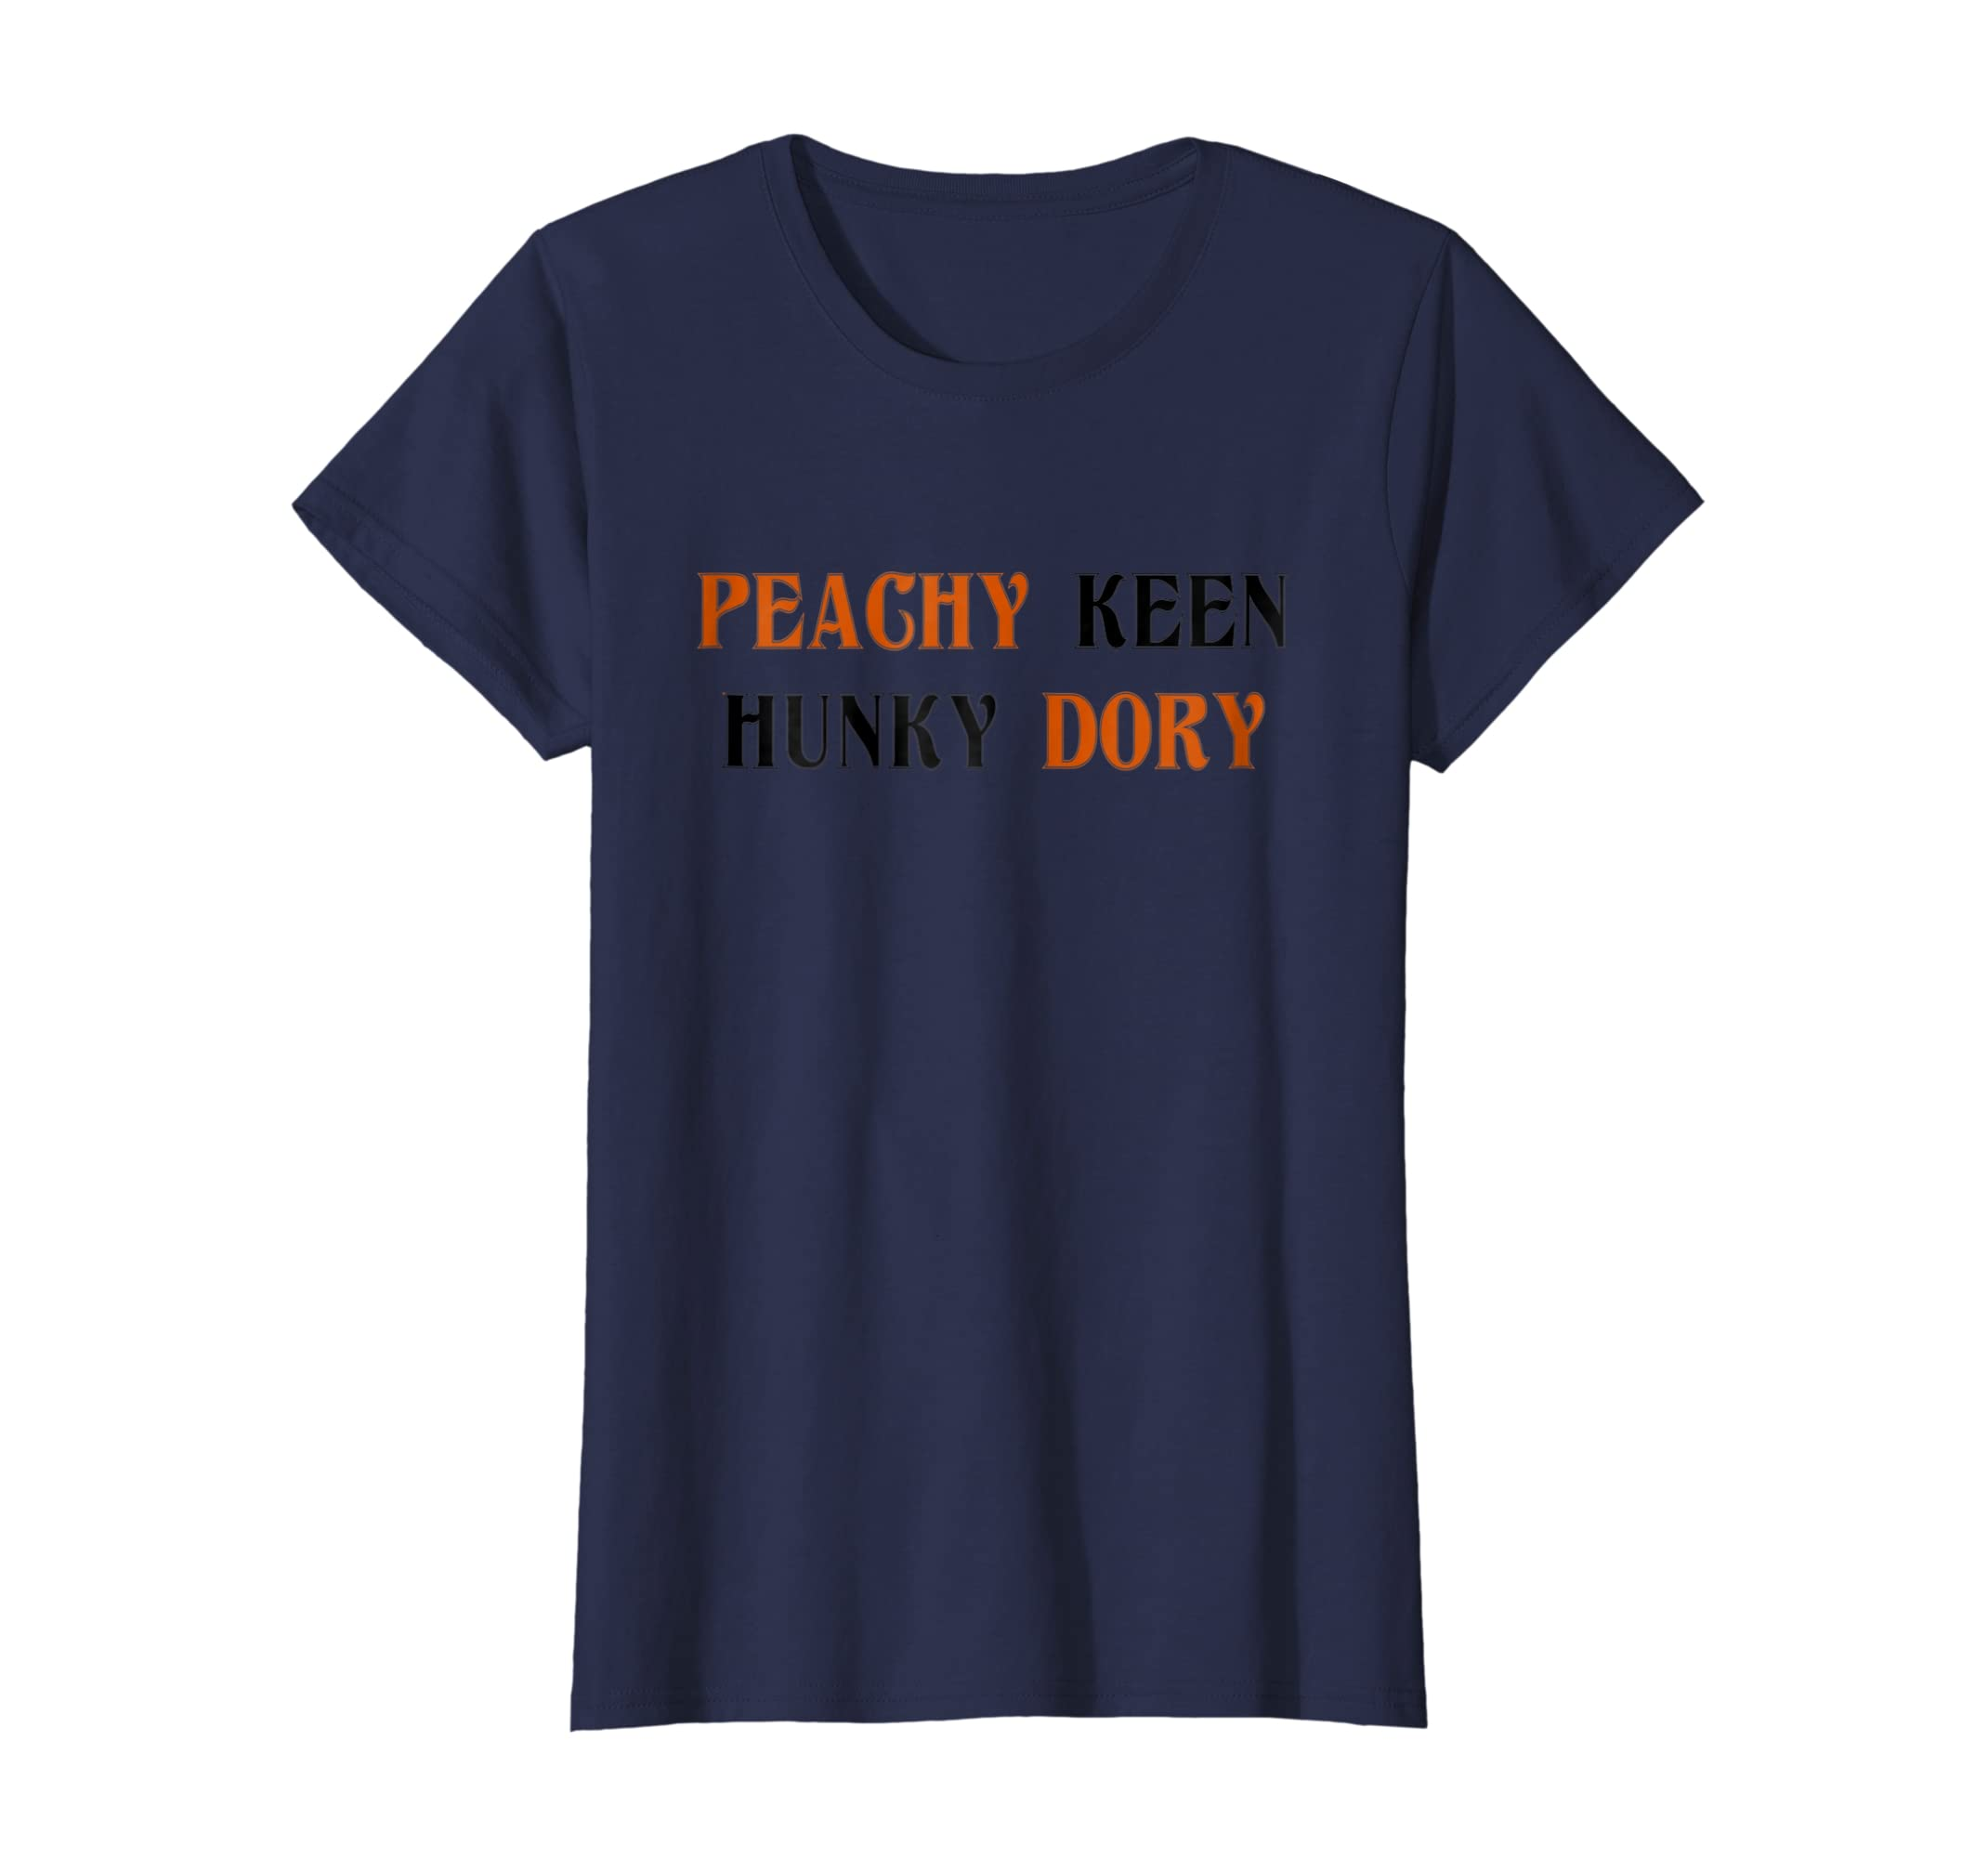 77d7b788419 Amazon.com: Everything is Peachy Dory Peachy Keen Hunky Dory Trump Tee:  Clothing